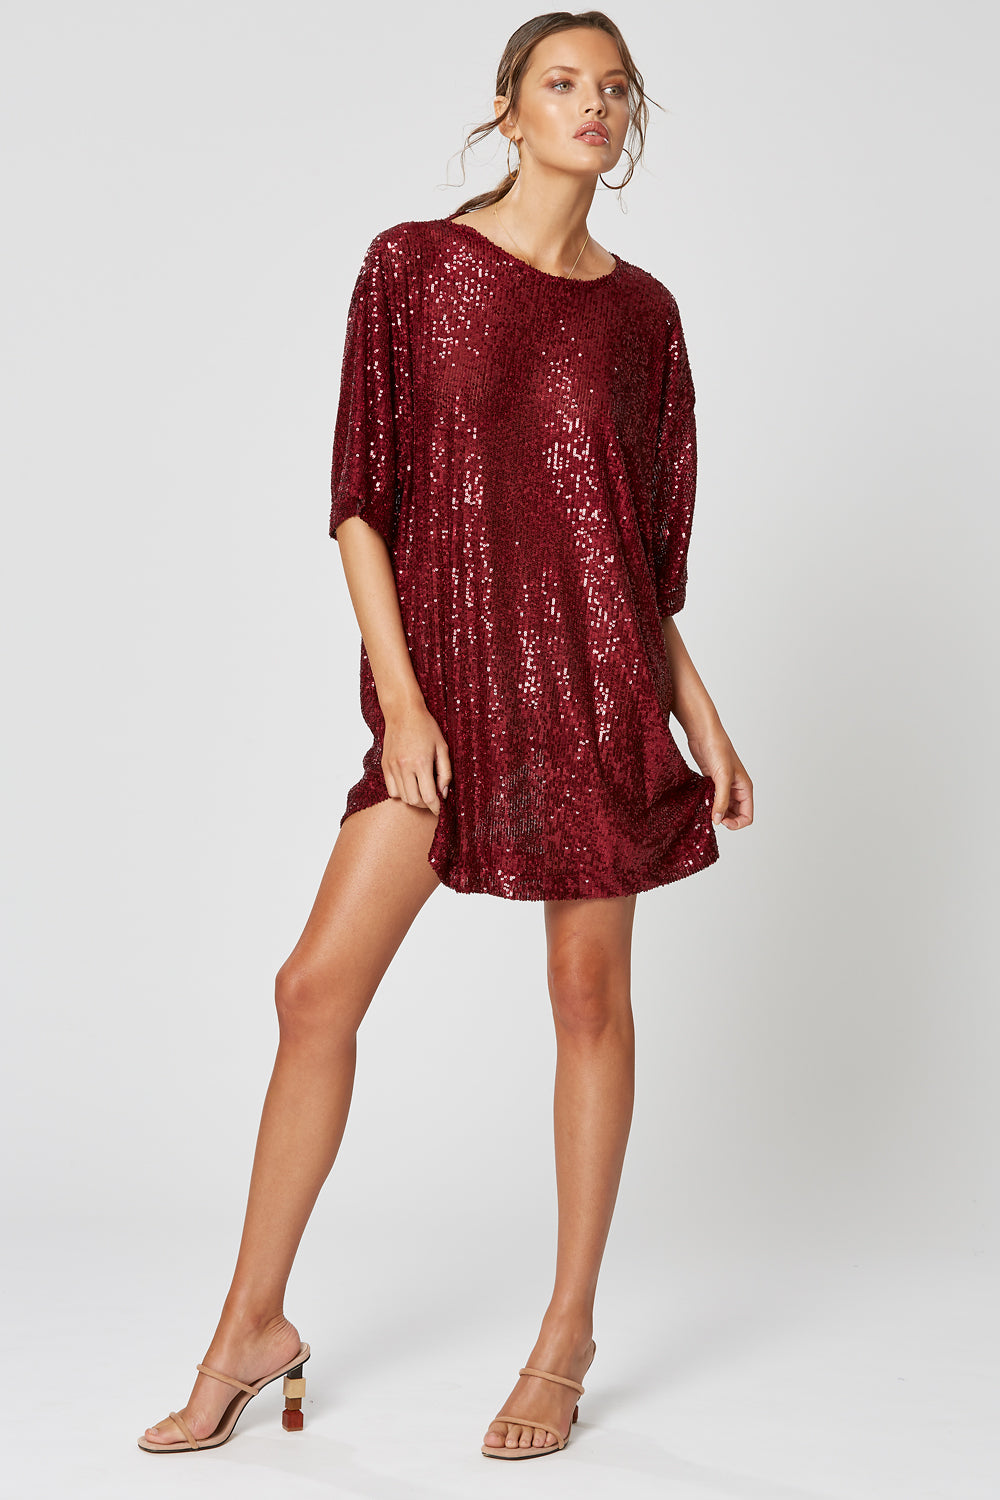 STELLA OVERSIZED TOP WINE